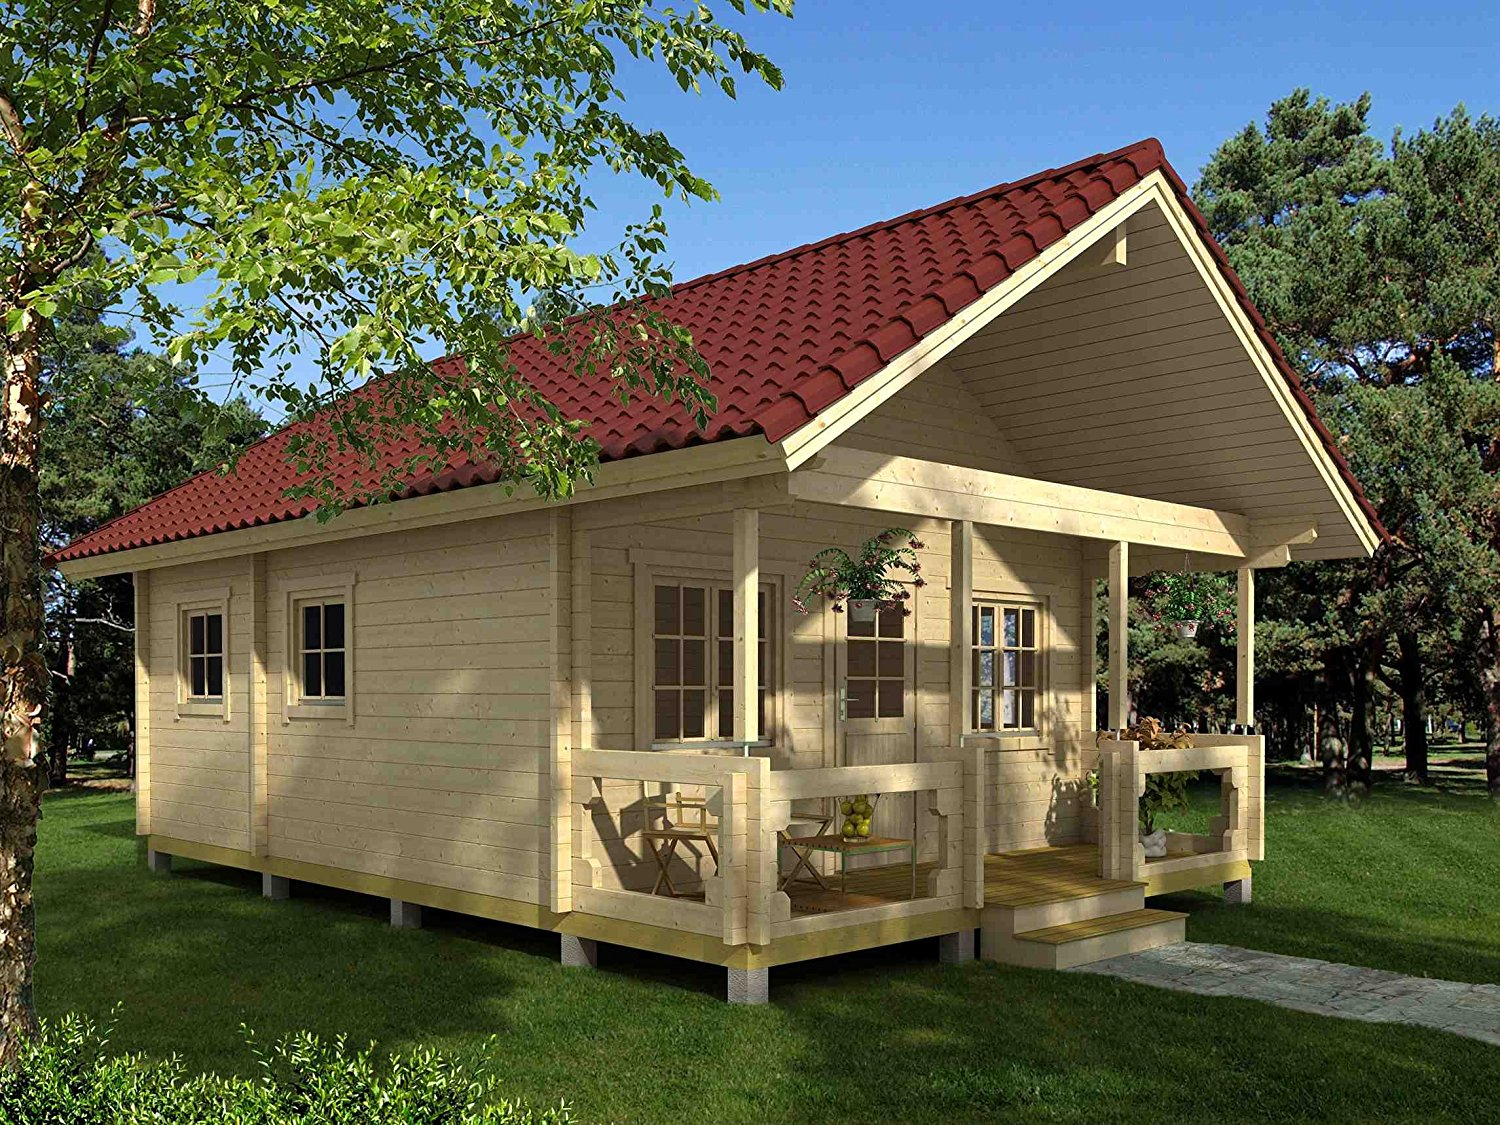 The Best Tiny Houses Available on Amazon: Three-room cabin